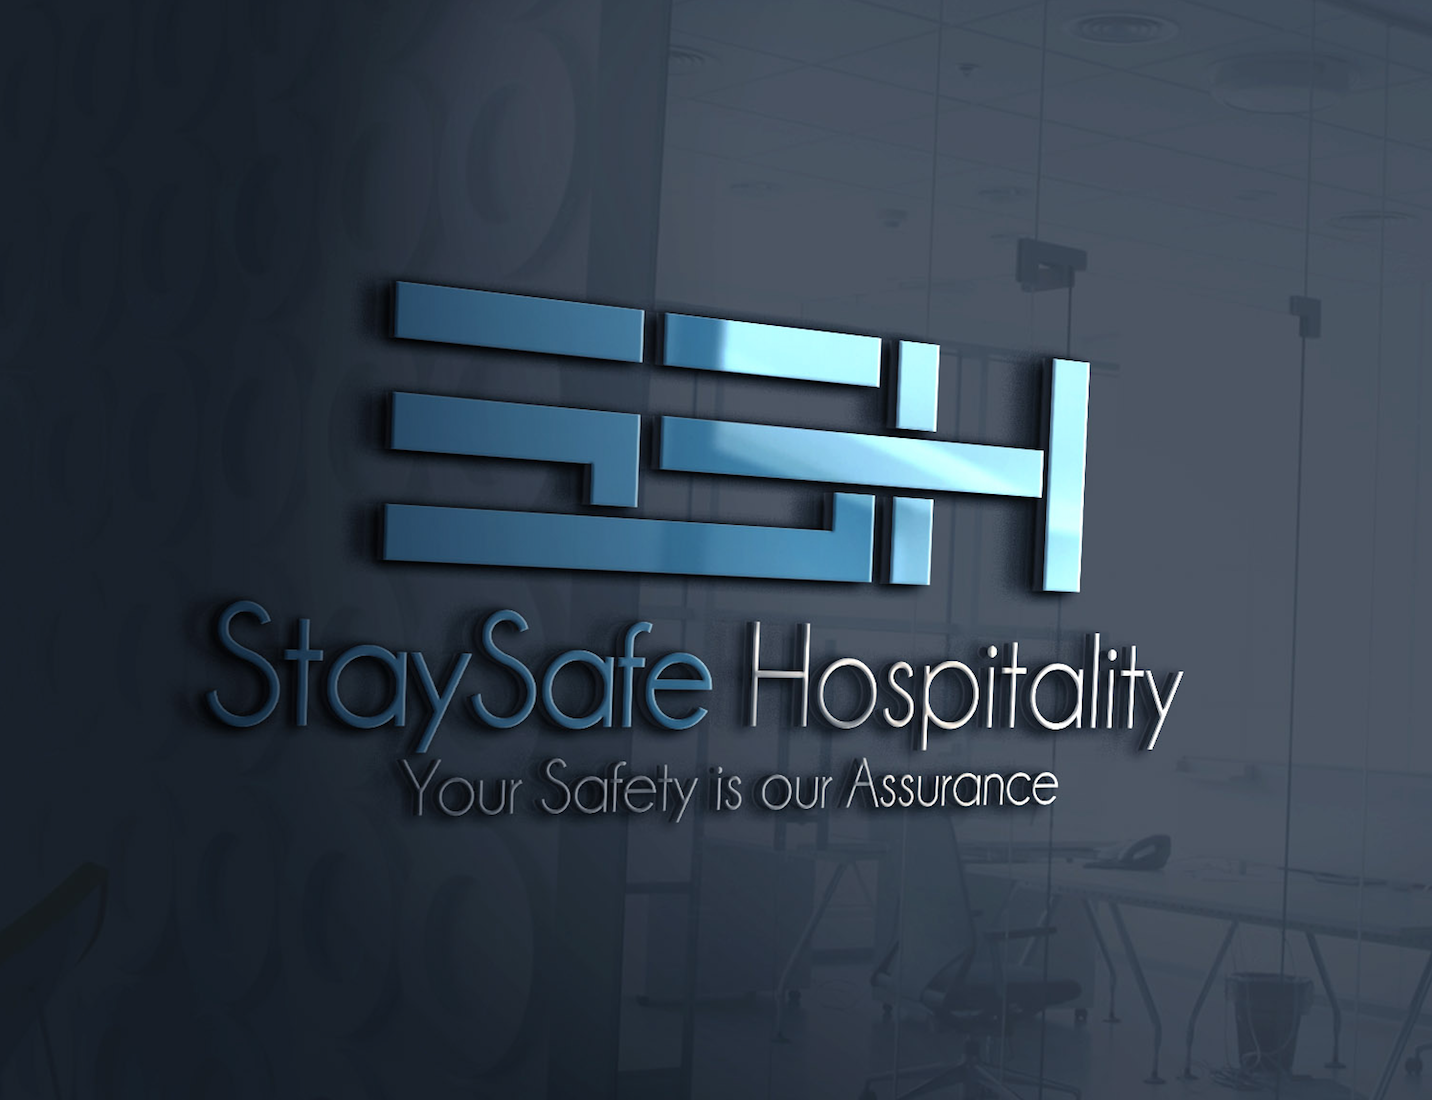 Hotel Security Risk Analysis & Profile